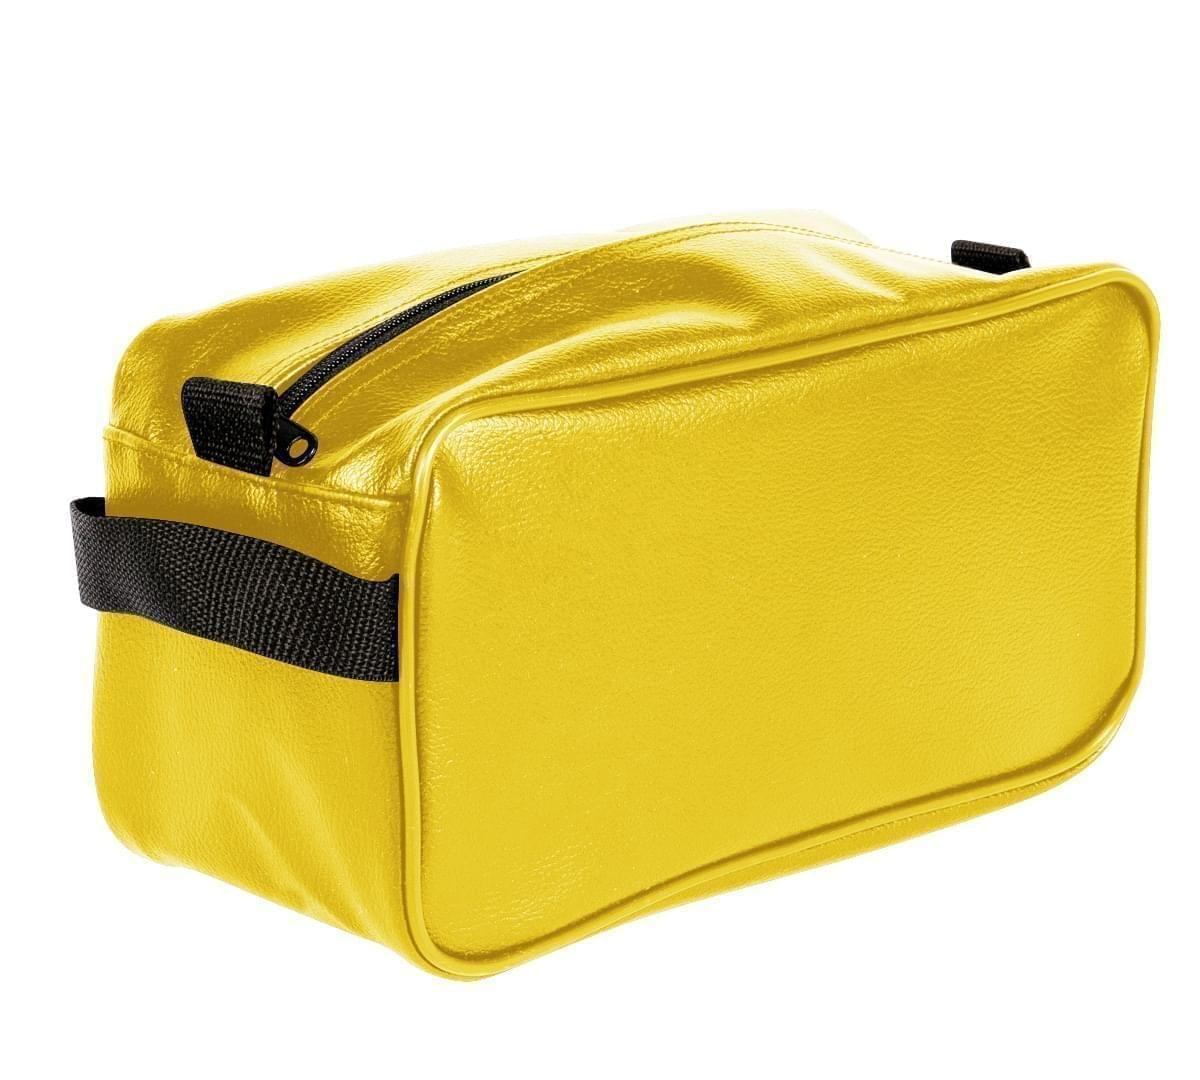 USA Made Cosmetic & Toiletry Cases, Gold-Black, 3000996-A4R